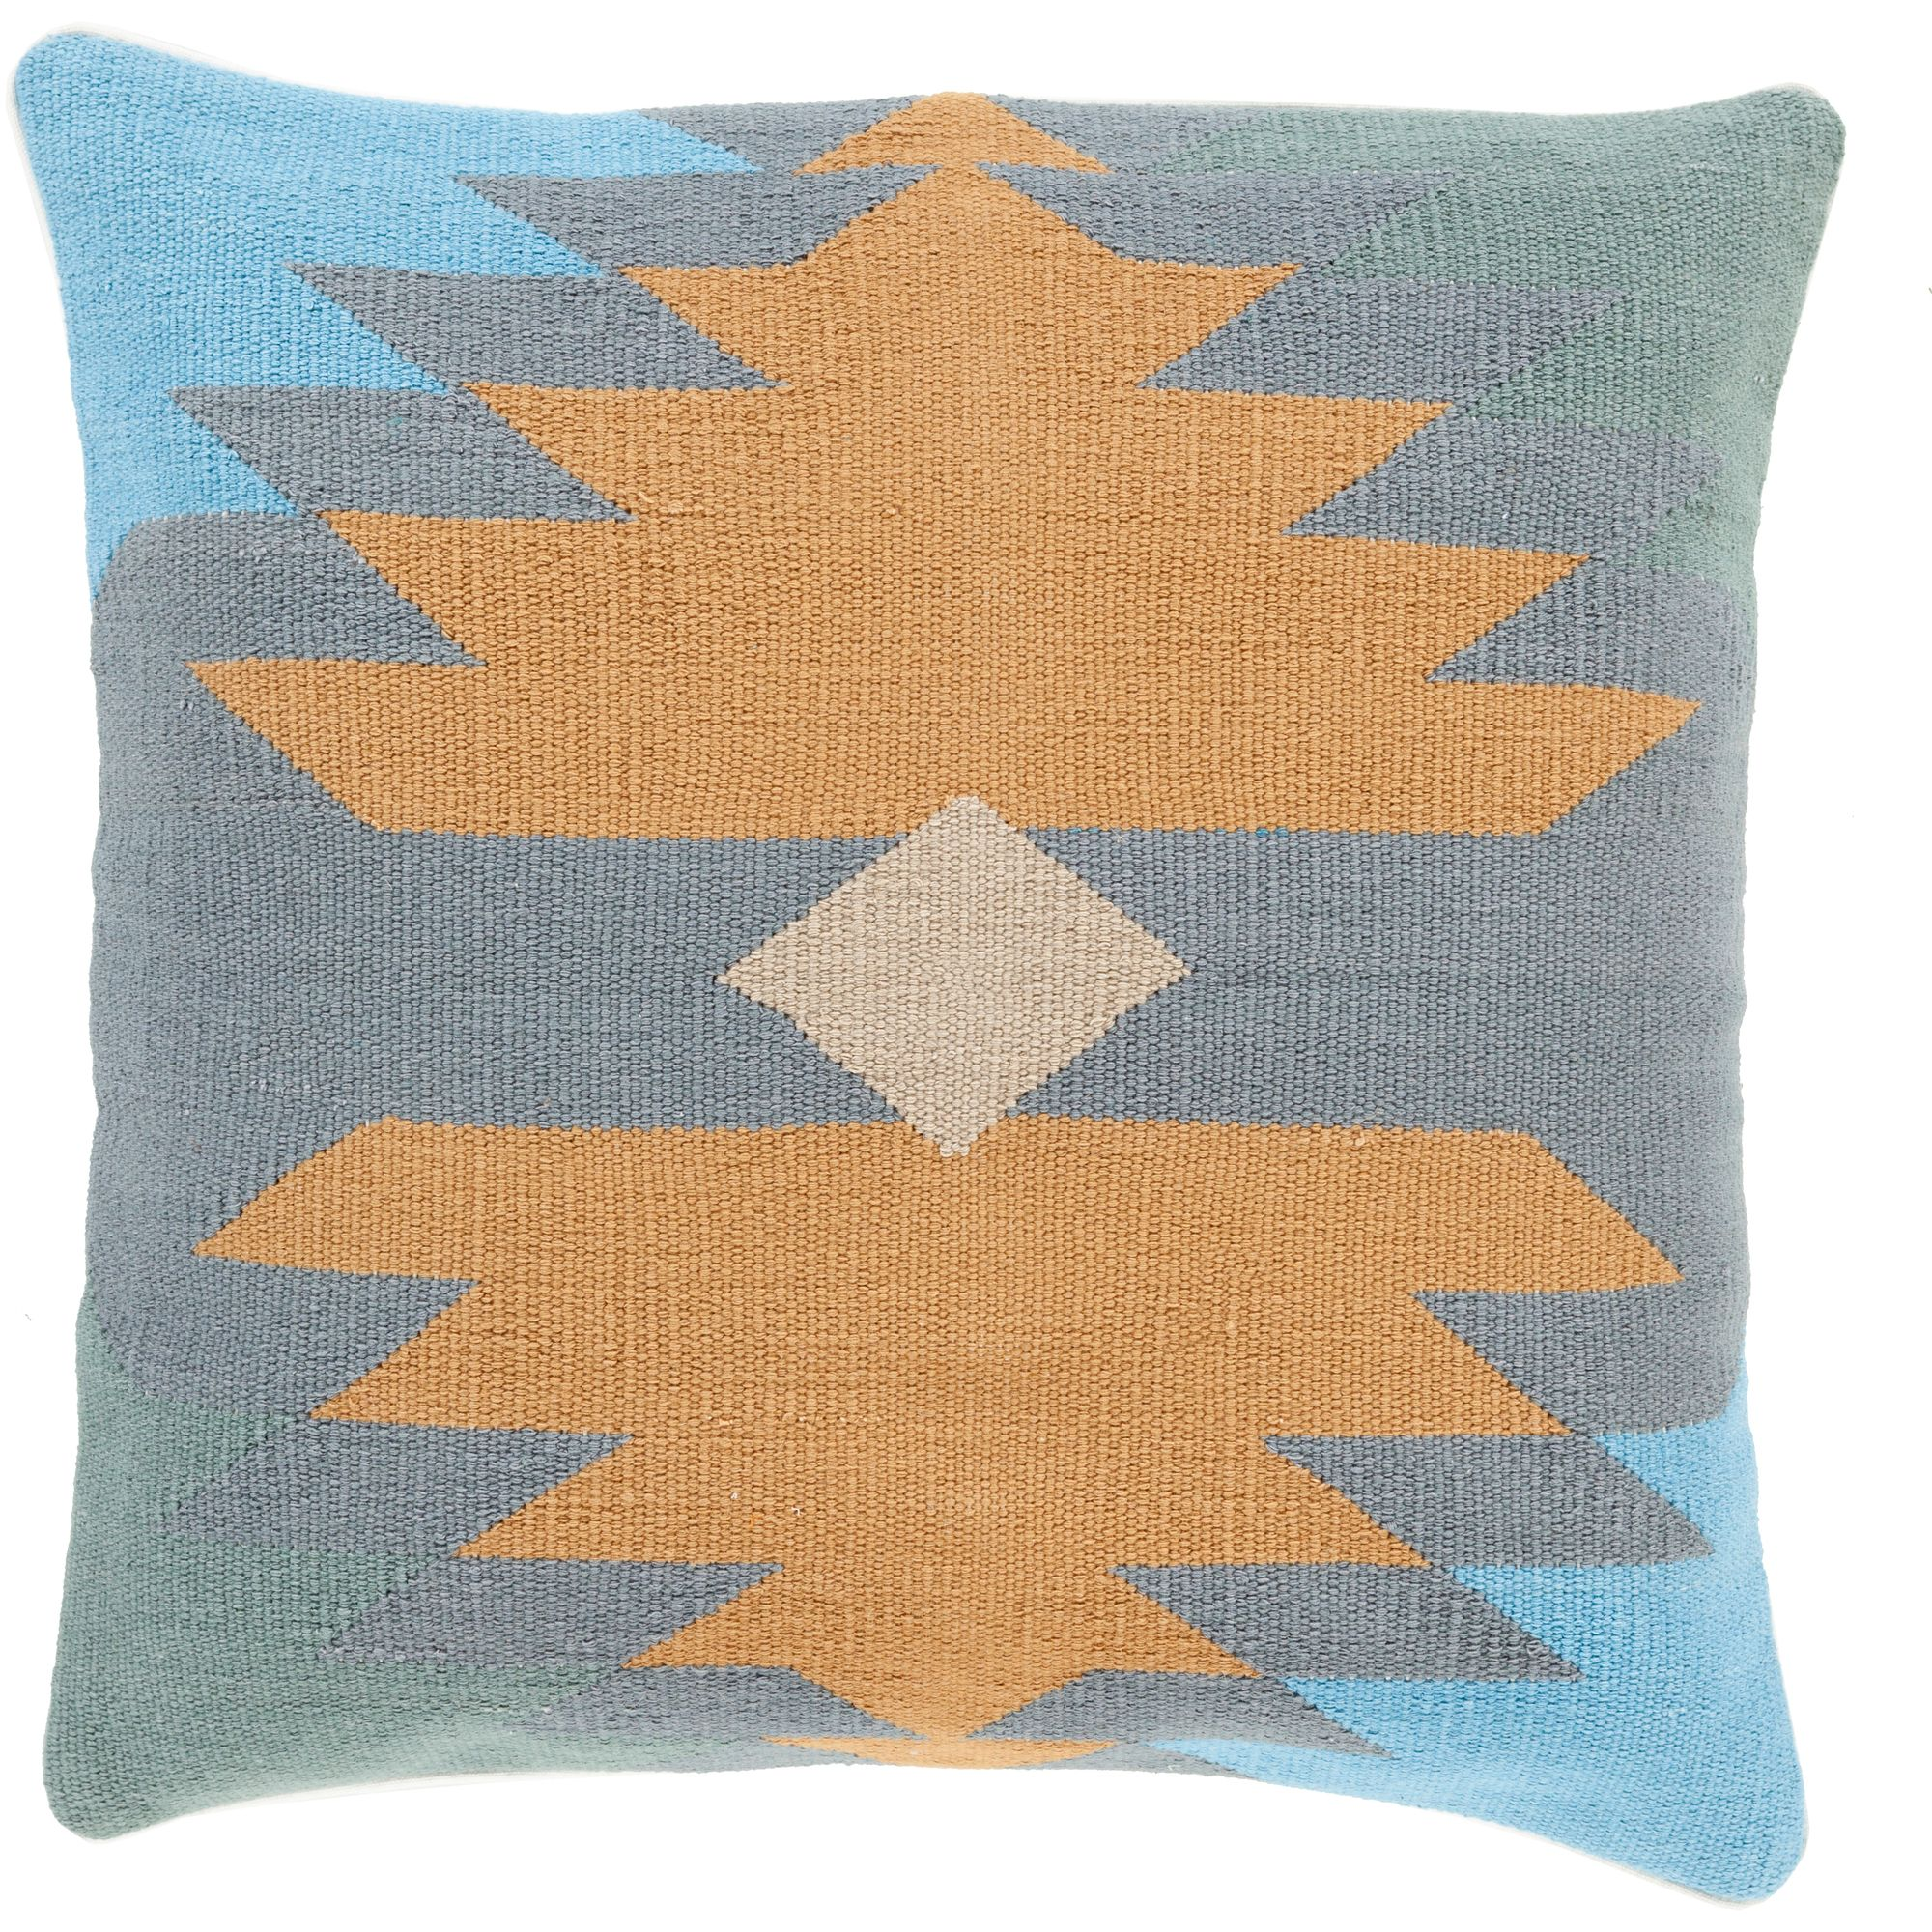 "Art of Knot Swazey 18"" x 18"" Pillow (with Down Fill)"